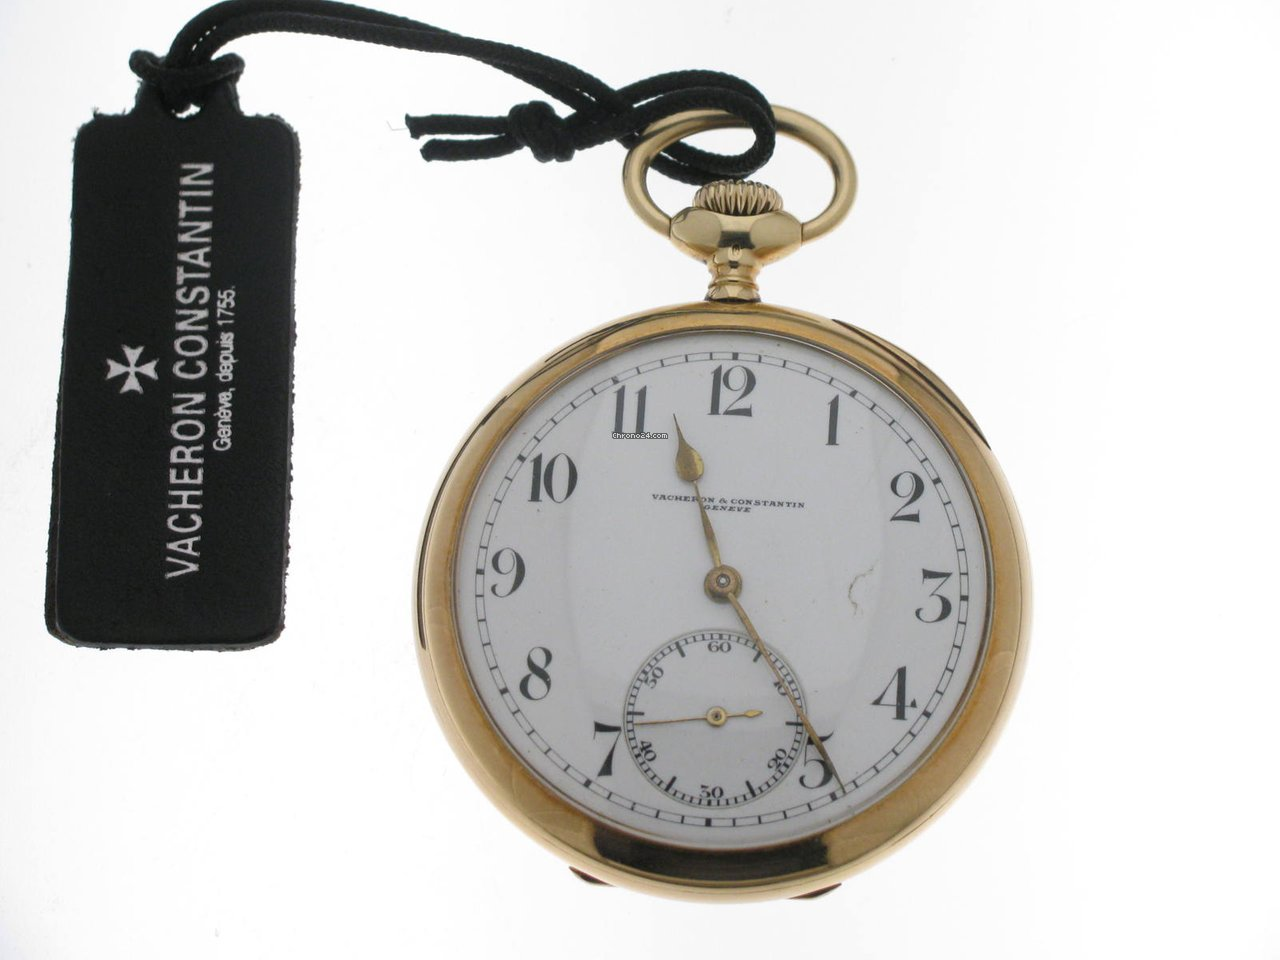 f7f026bd8 Vacheron Constantin pocket watches - compare prices on Chrono24